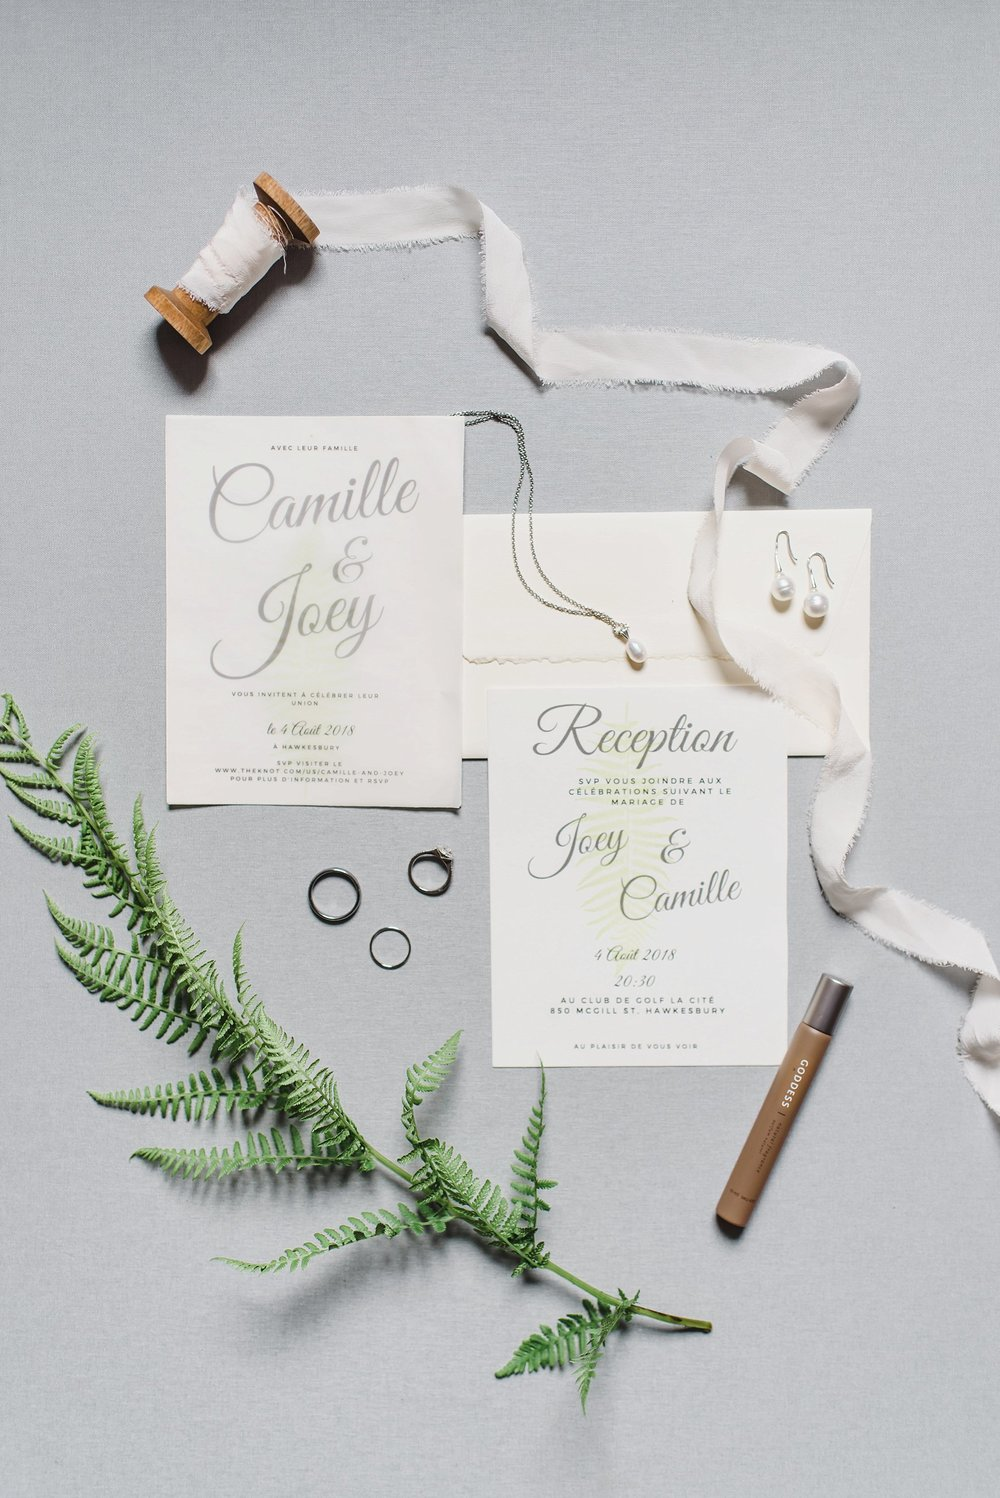 Camille designed the invitations herself!  Simple, sweet and beautiful.